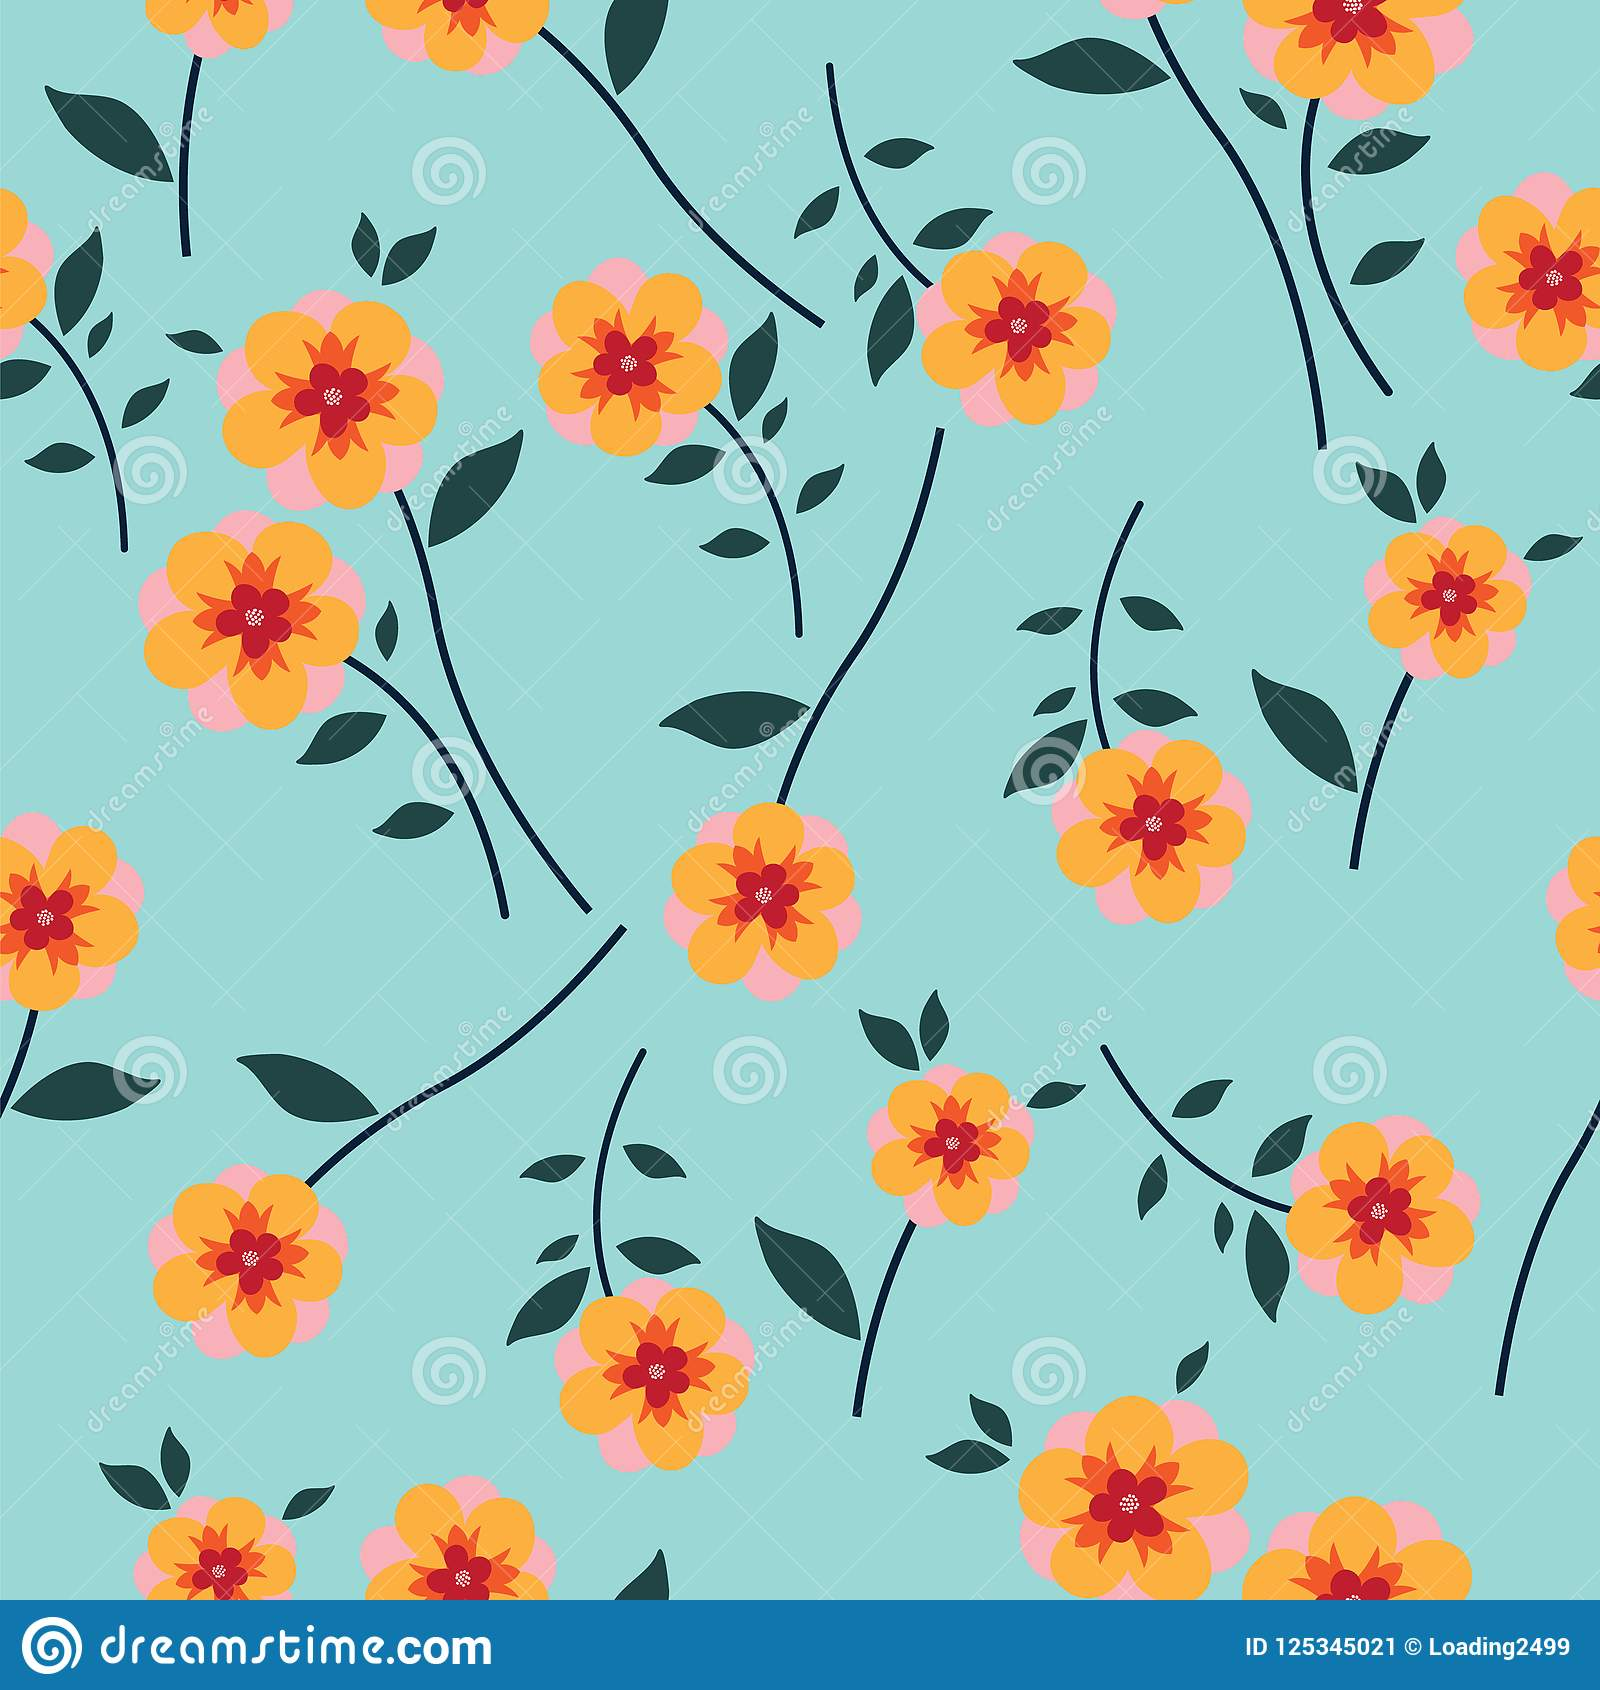 Cute Floral Pattern In The Small Flower Seamless Vector Yellow